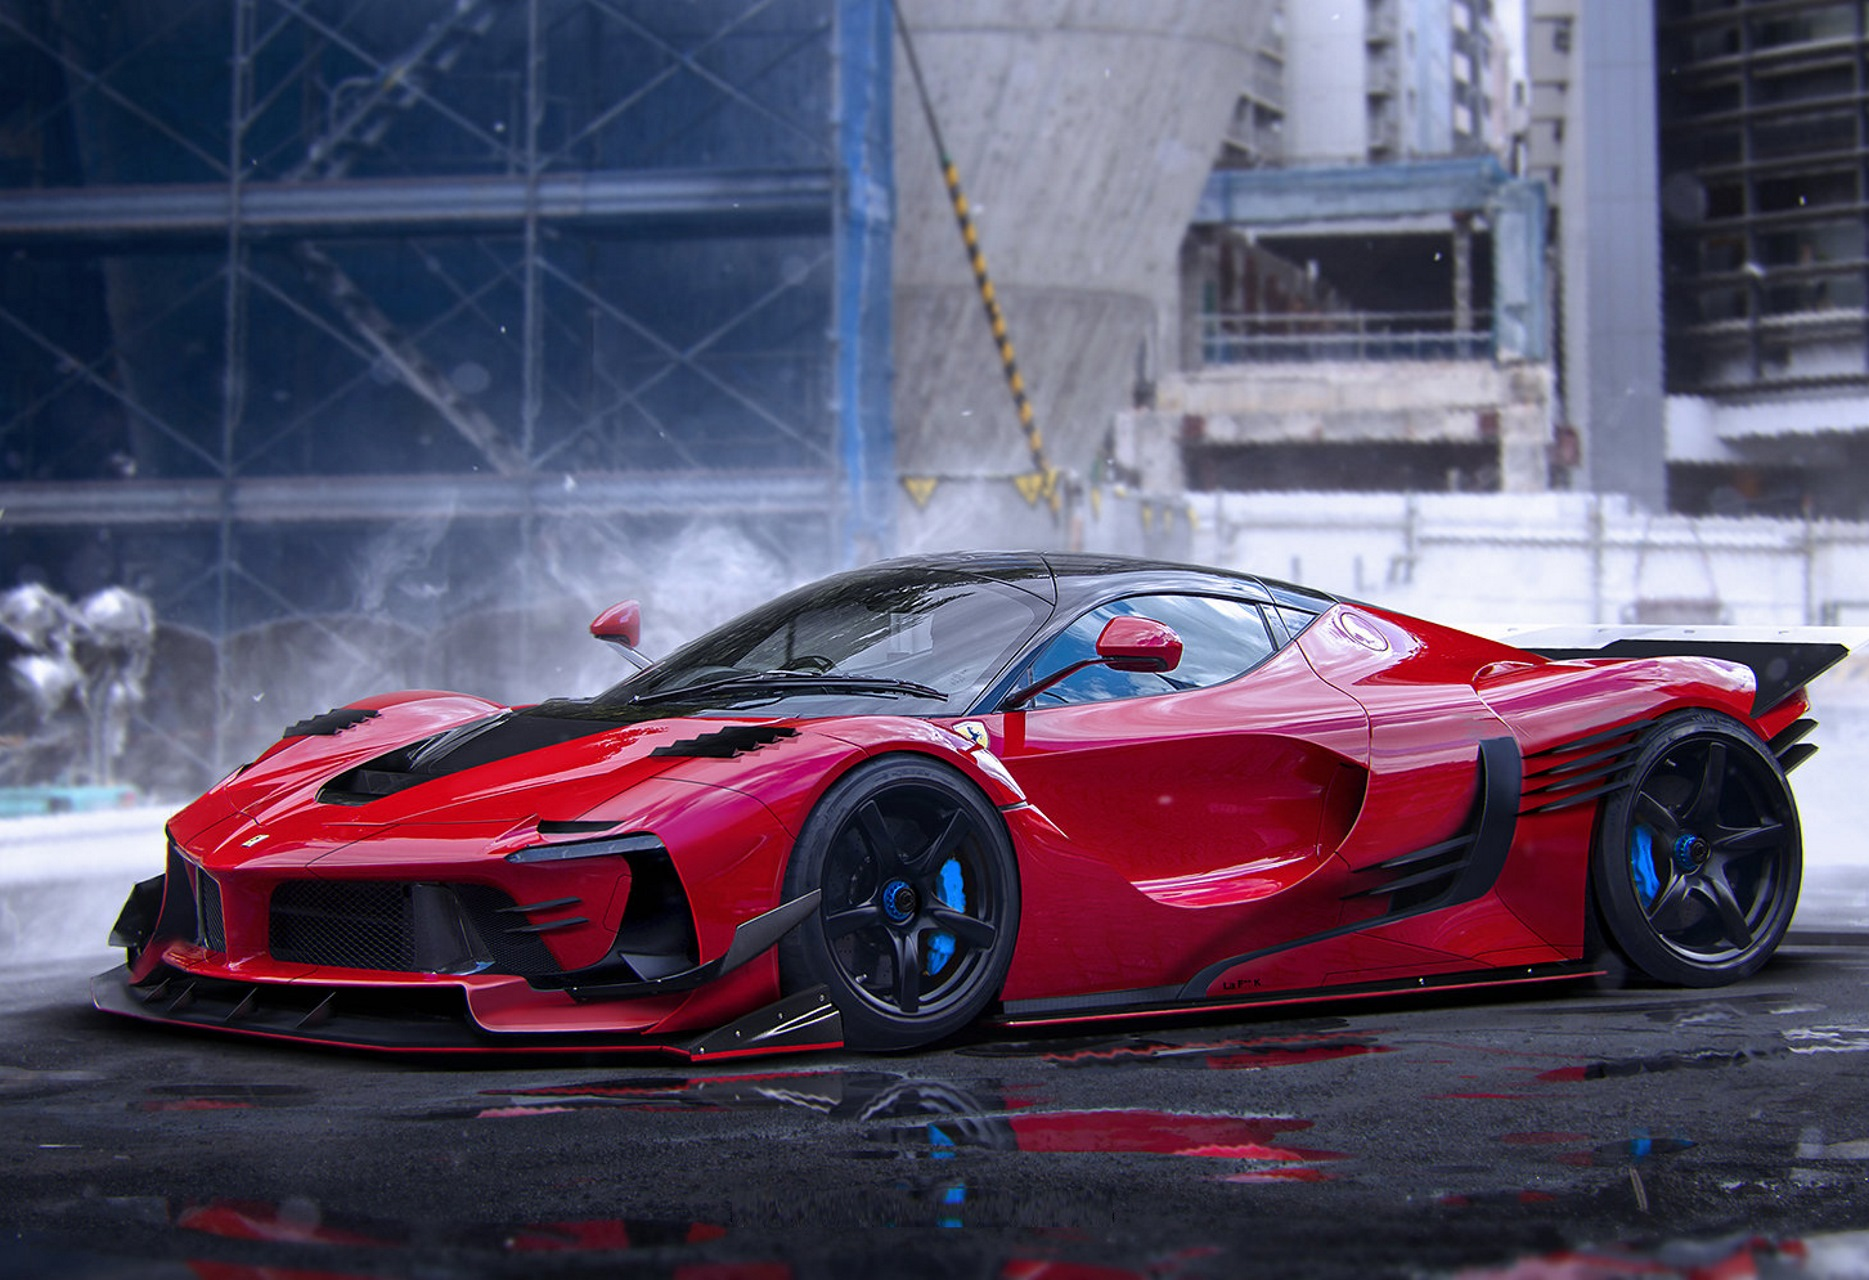 Pictures Of Cool Cars >> New Super Cool Cars Red Wallpapers Vip